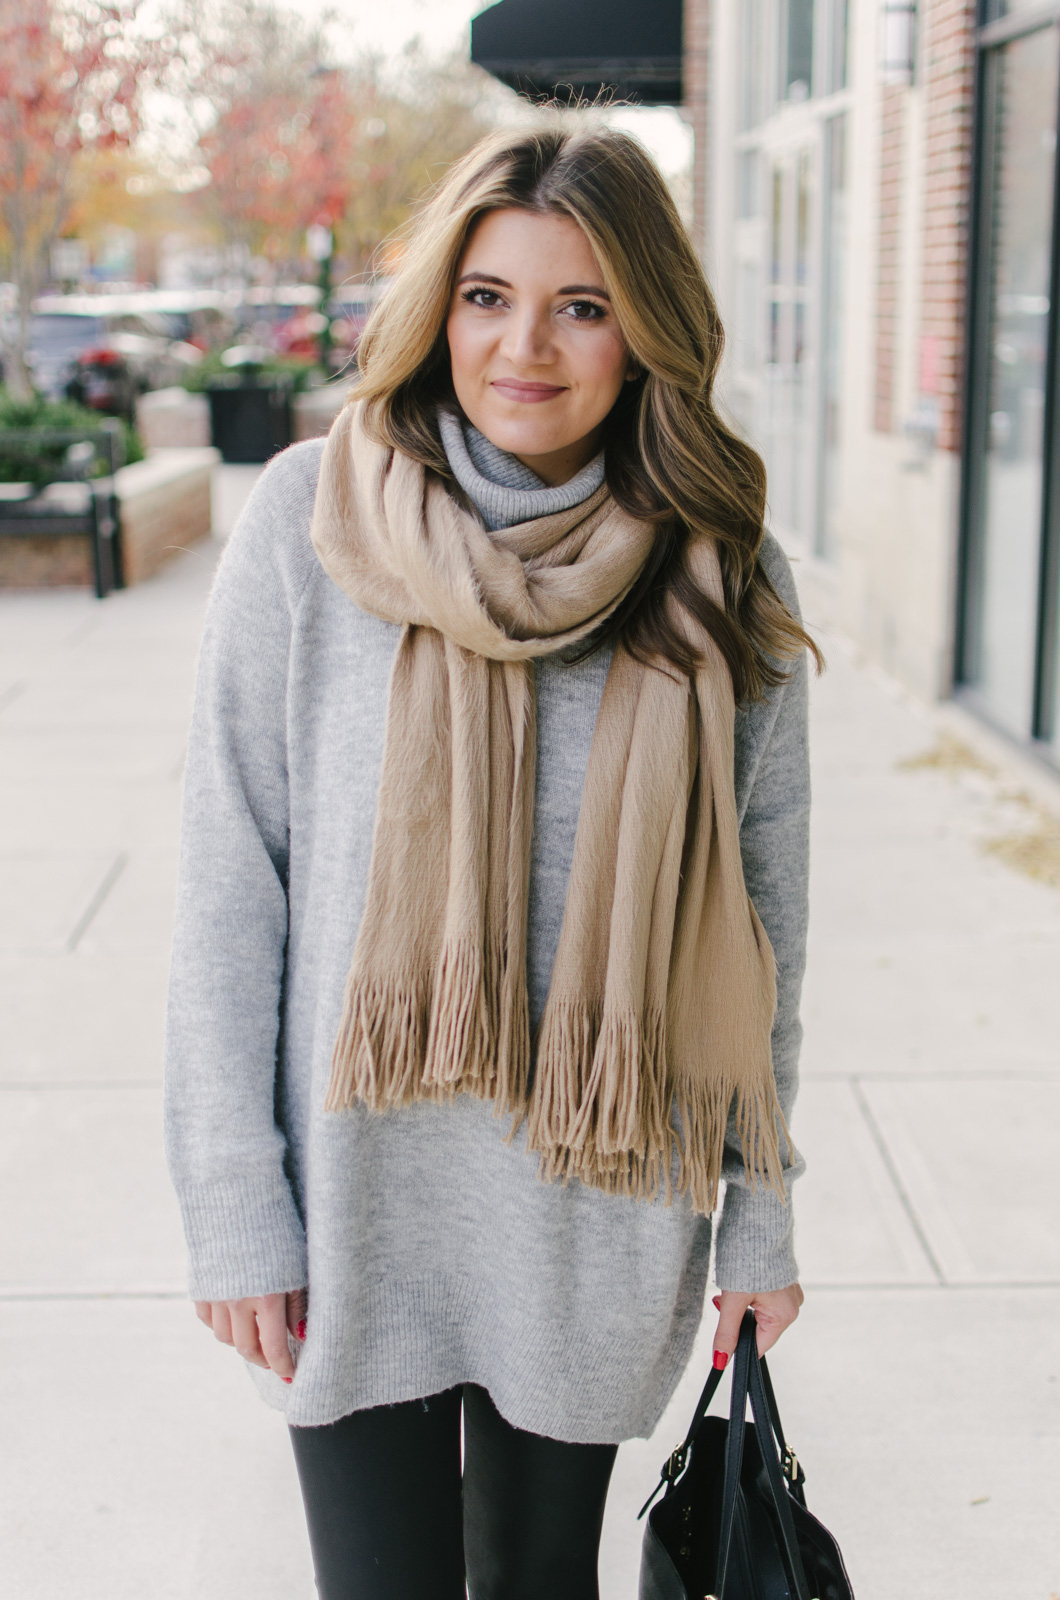 leggings outfit casual - winter leggings outfit | For more casual Winter outfits, click through to bylaurenm.com!